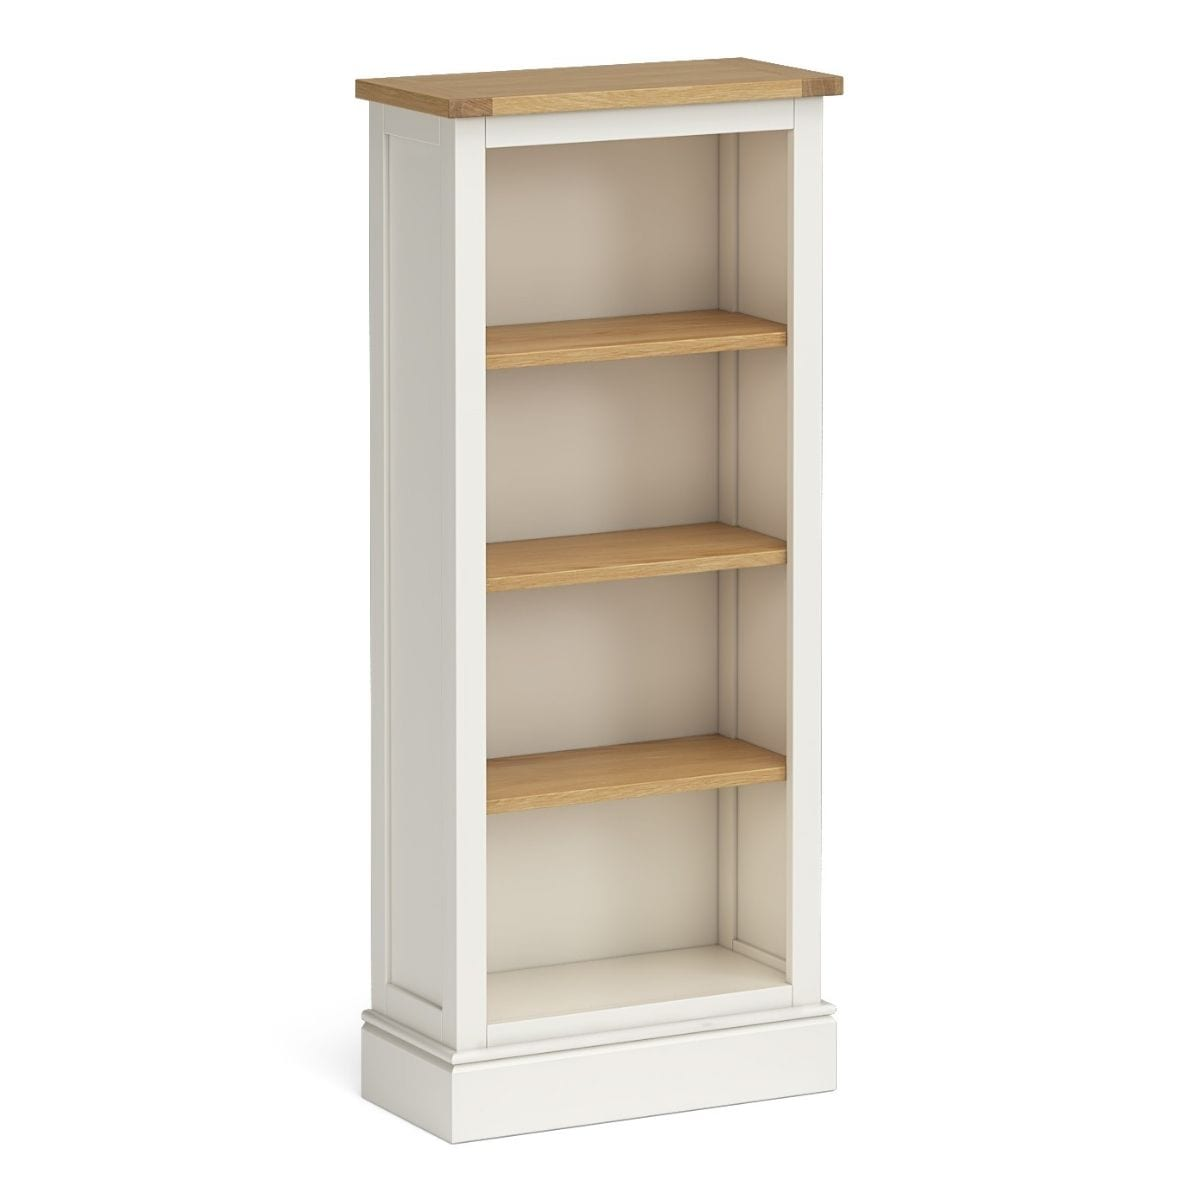 Charlie Slim Ivory and Oak Bookcase